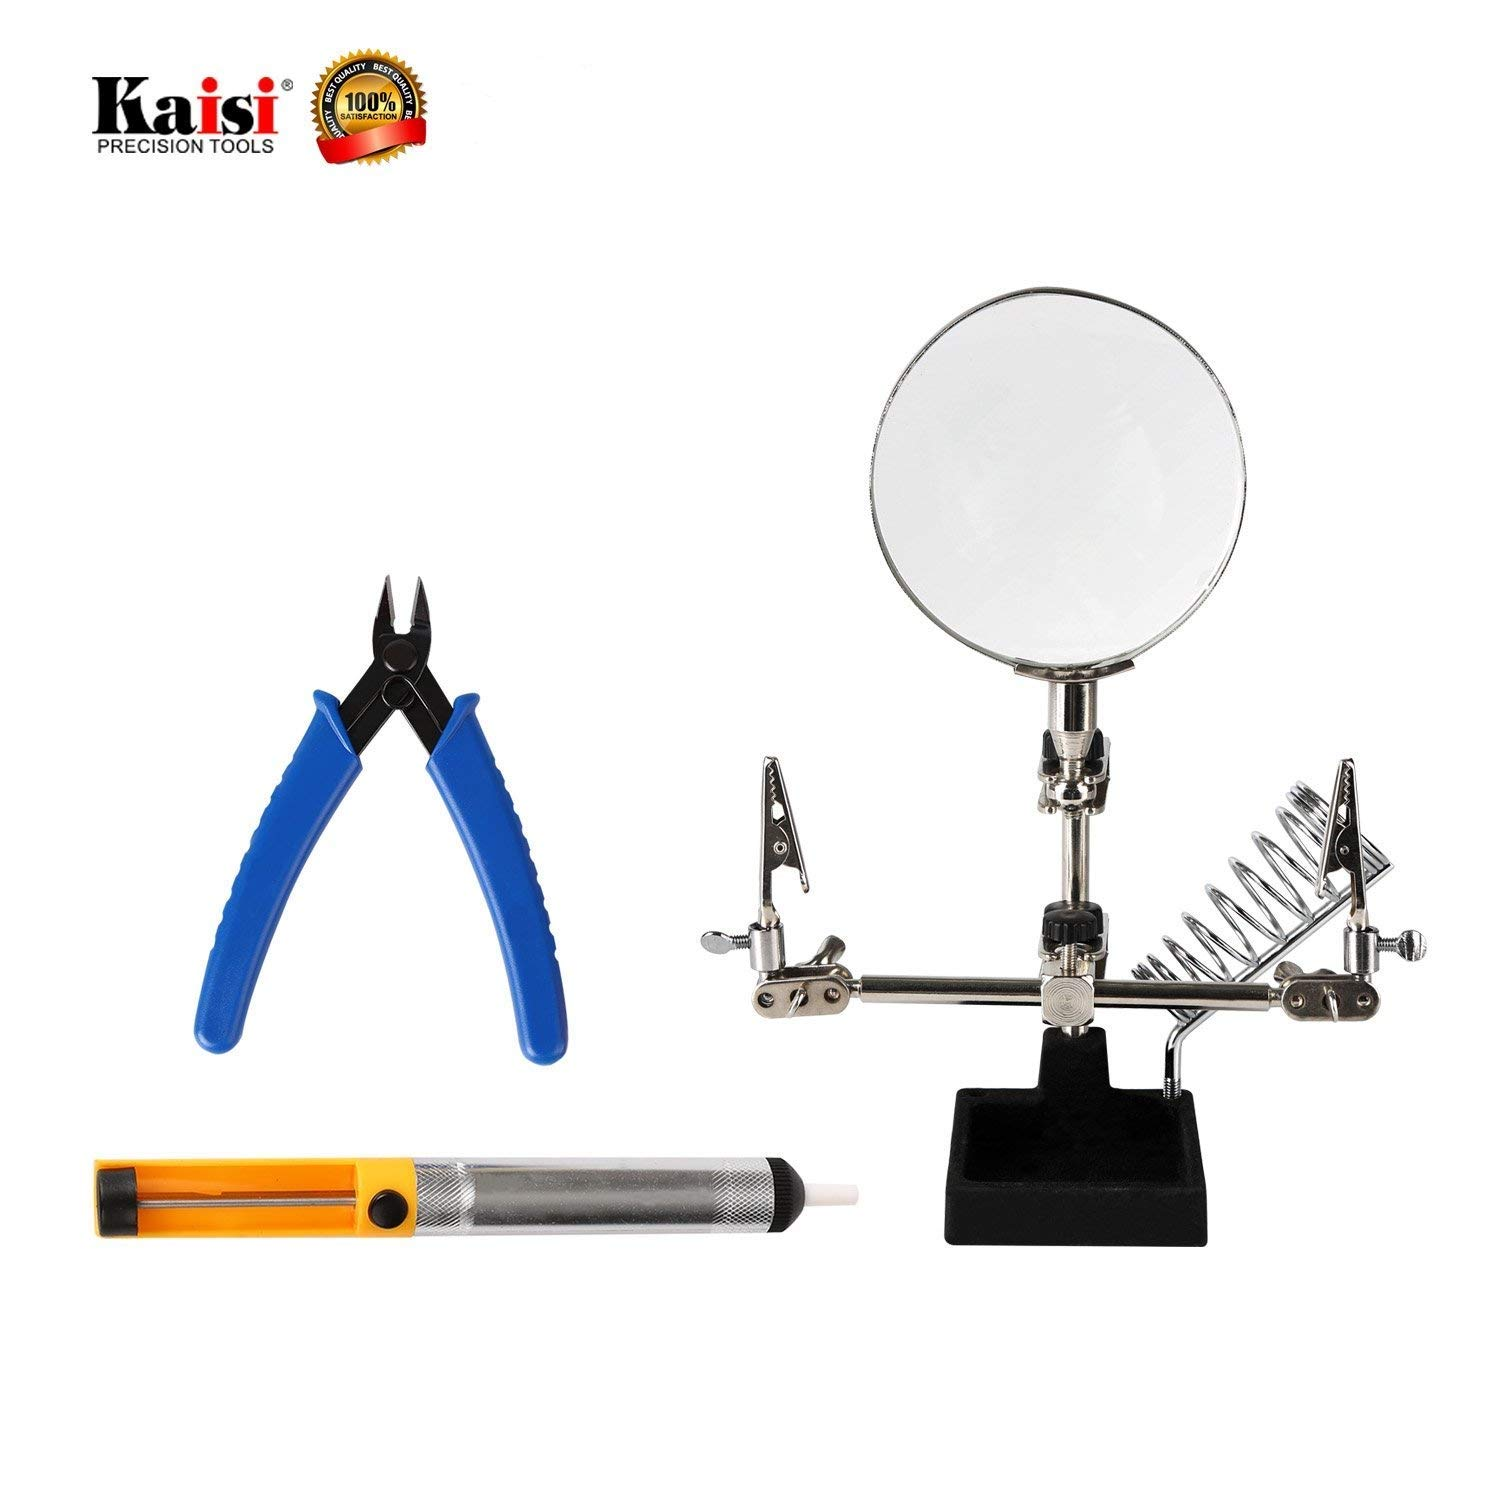 Repair Tools 3 in 1 Repair Set Helping Hands Magnifying Glass, Desoldering Pump and Wire Cutter Pliers with High Precision Professional and Ideal Soldering Tools By Kaisi